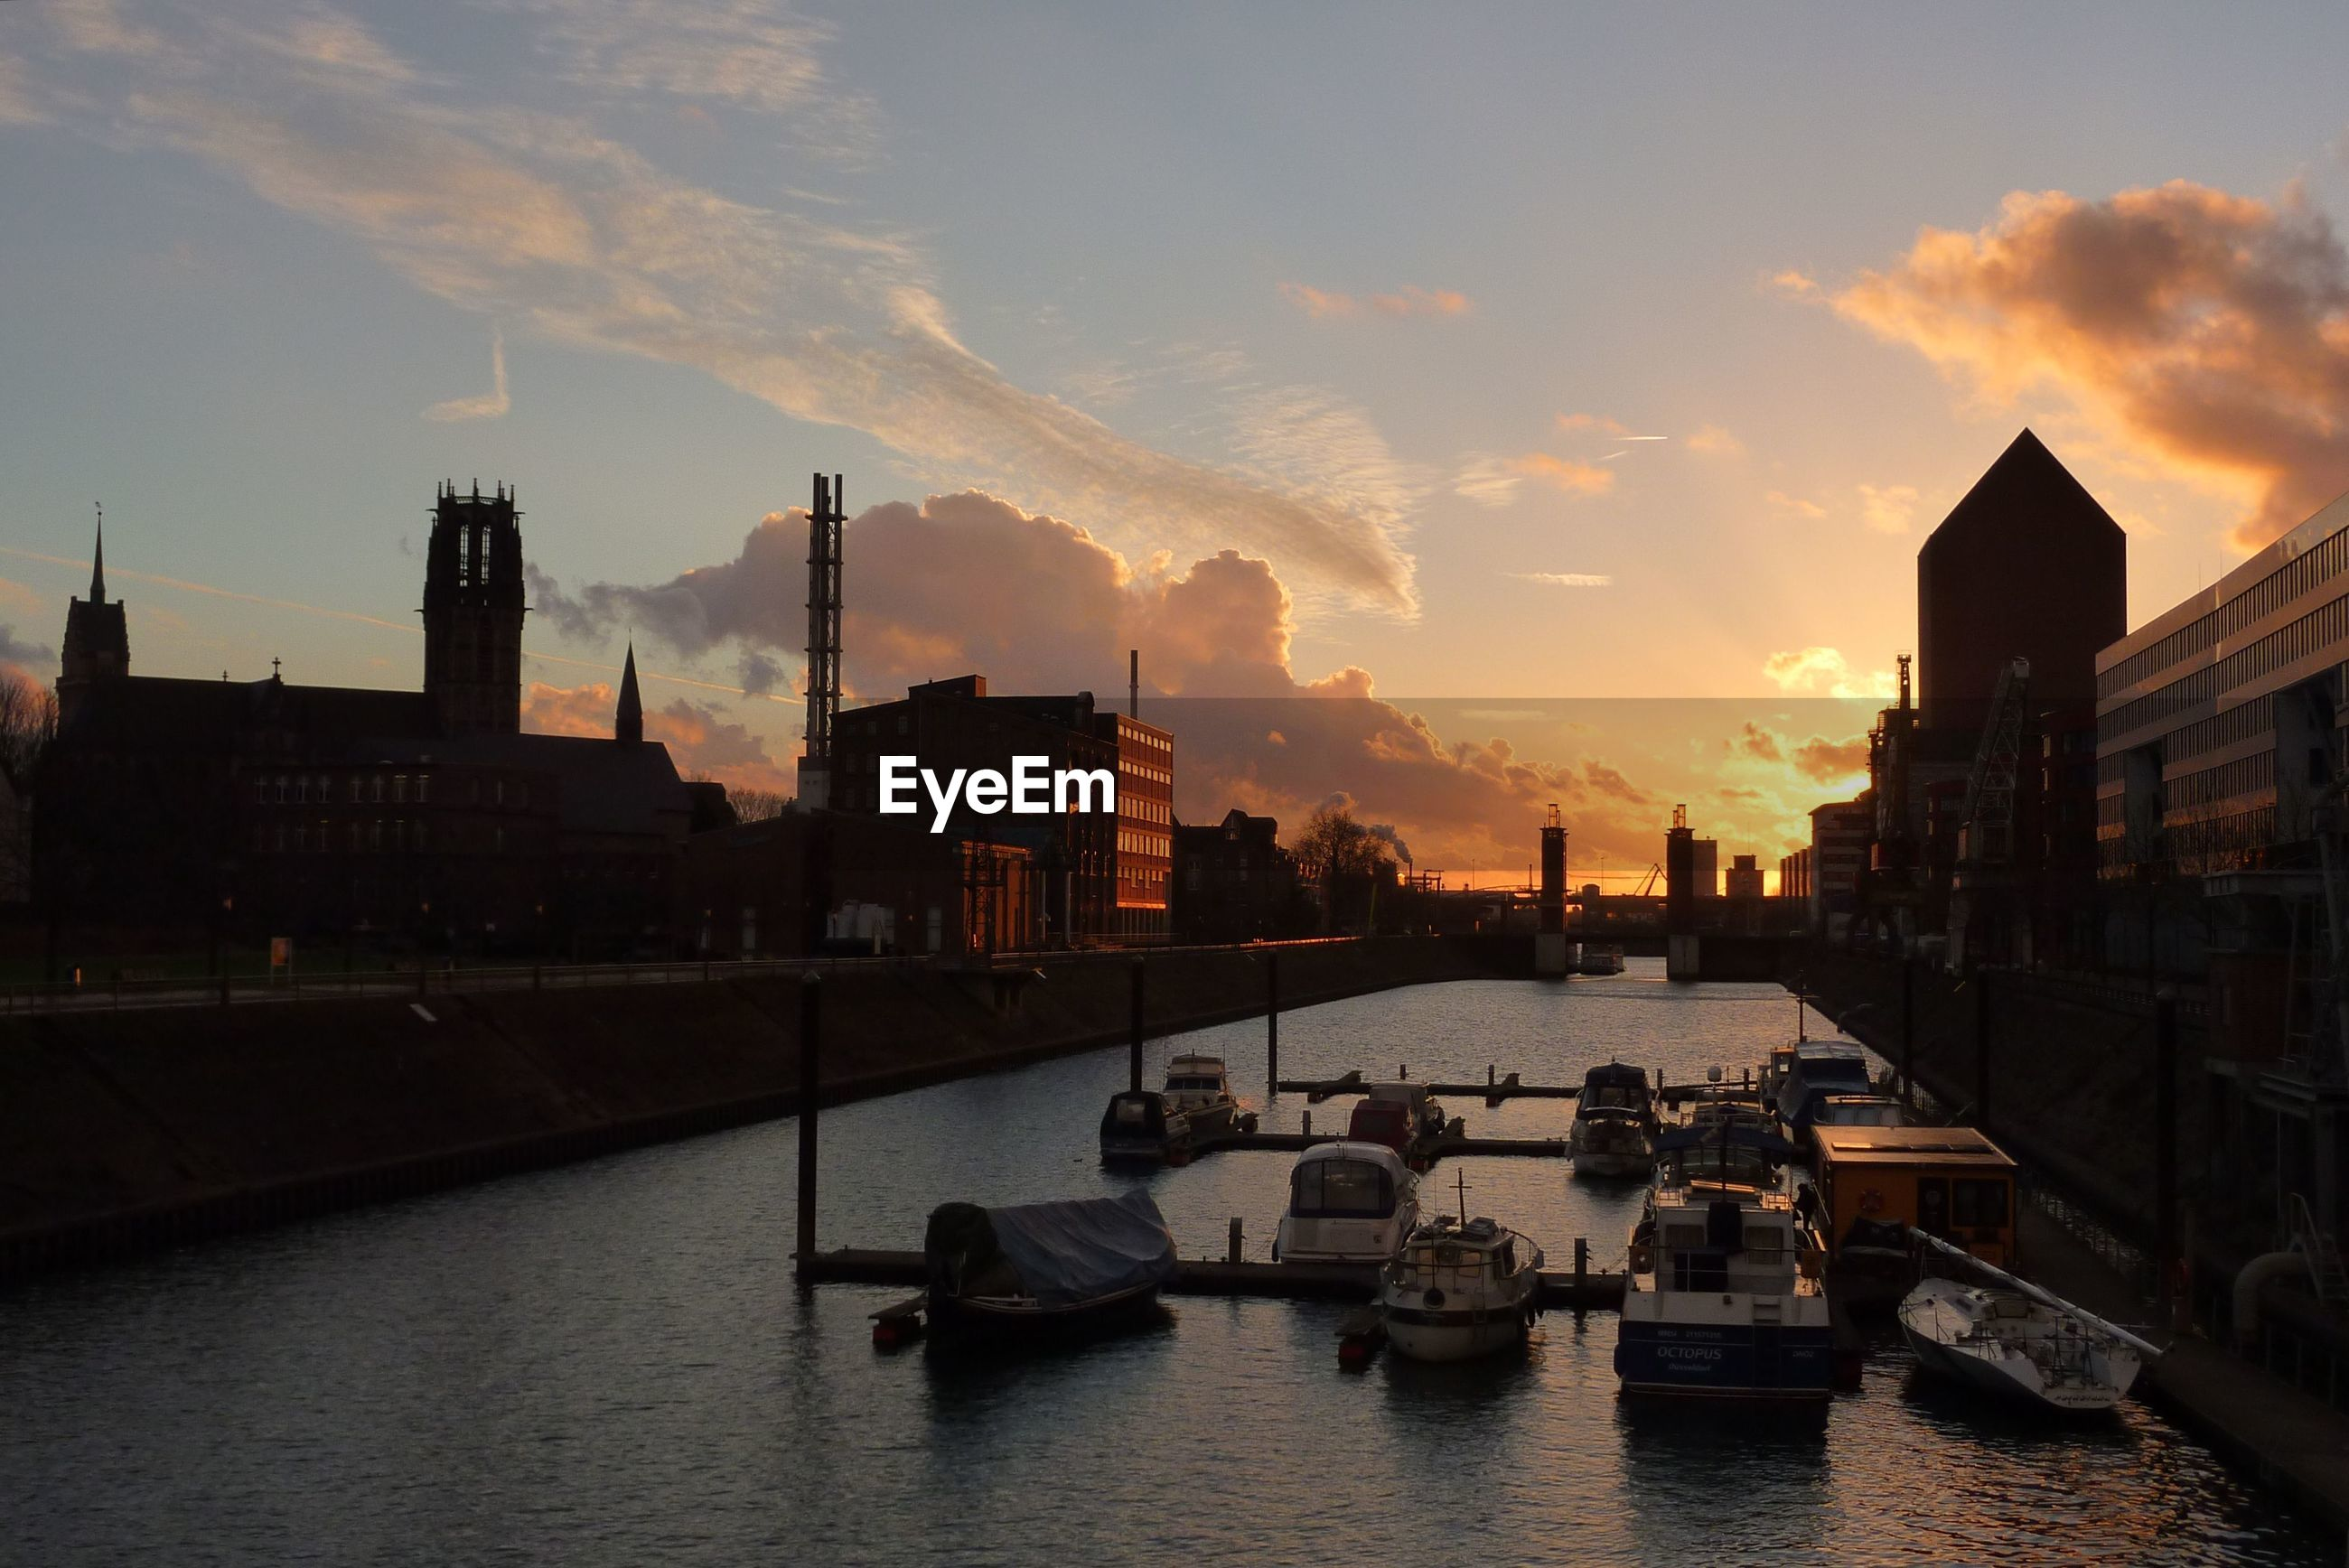 Boats on river against sky during sunset in city